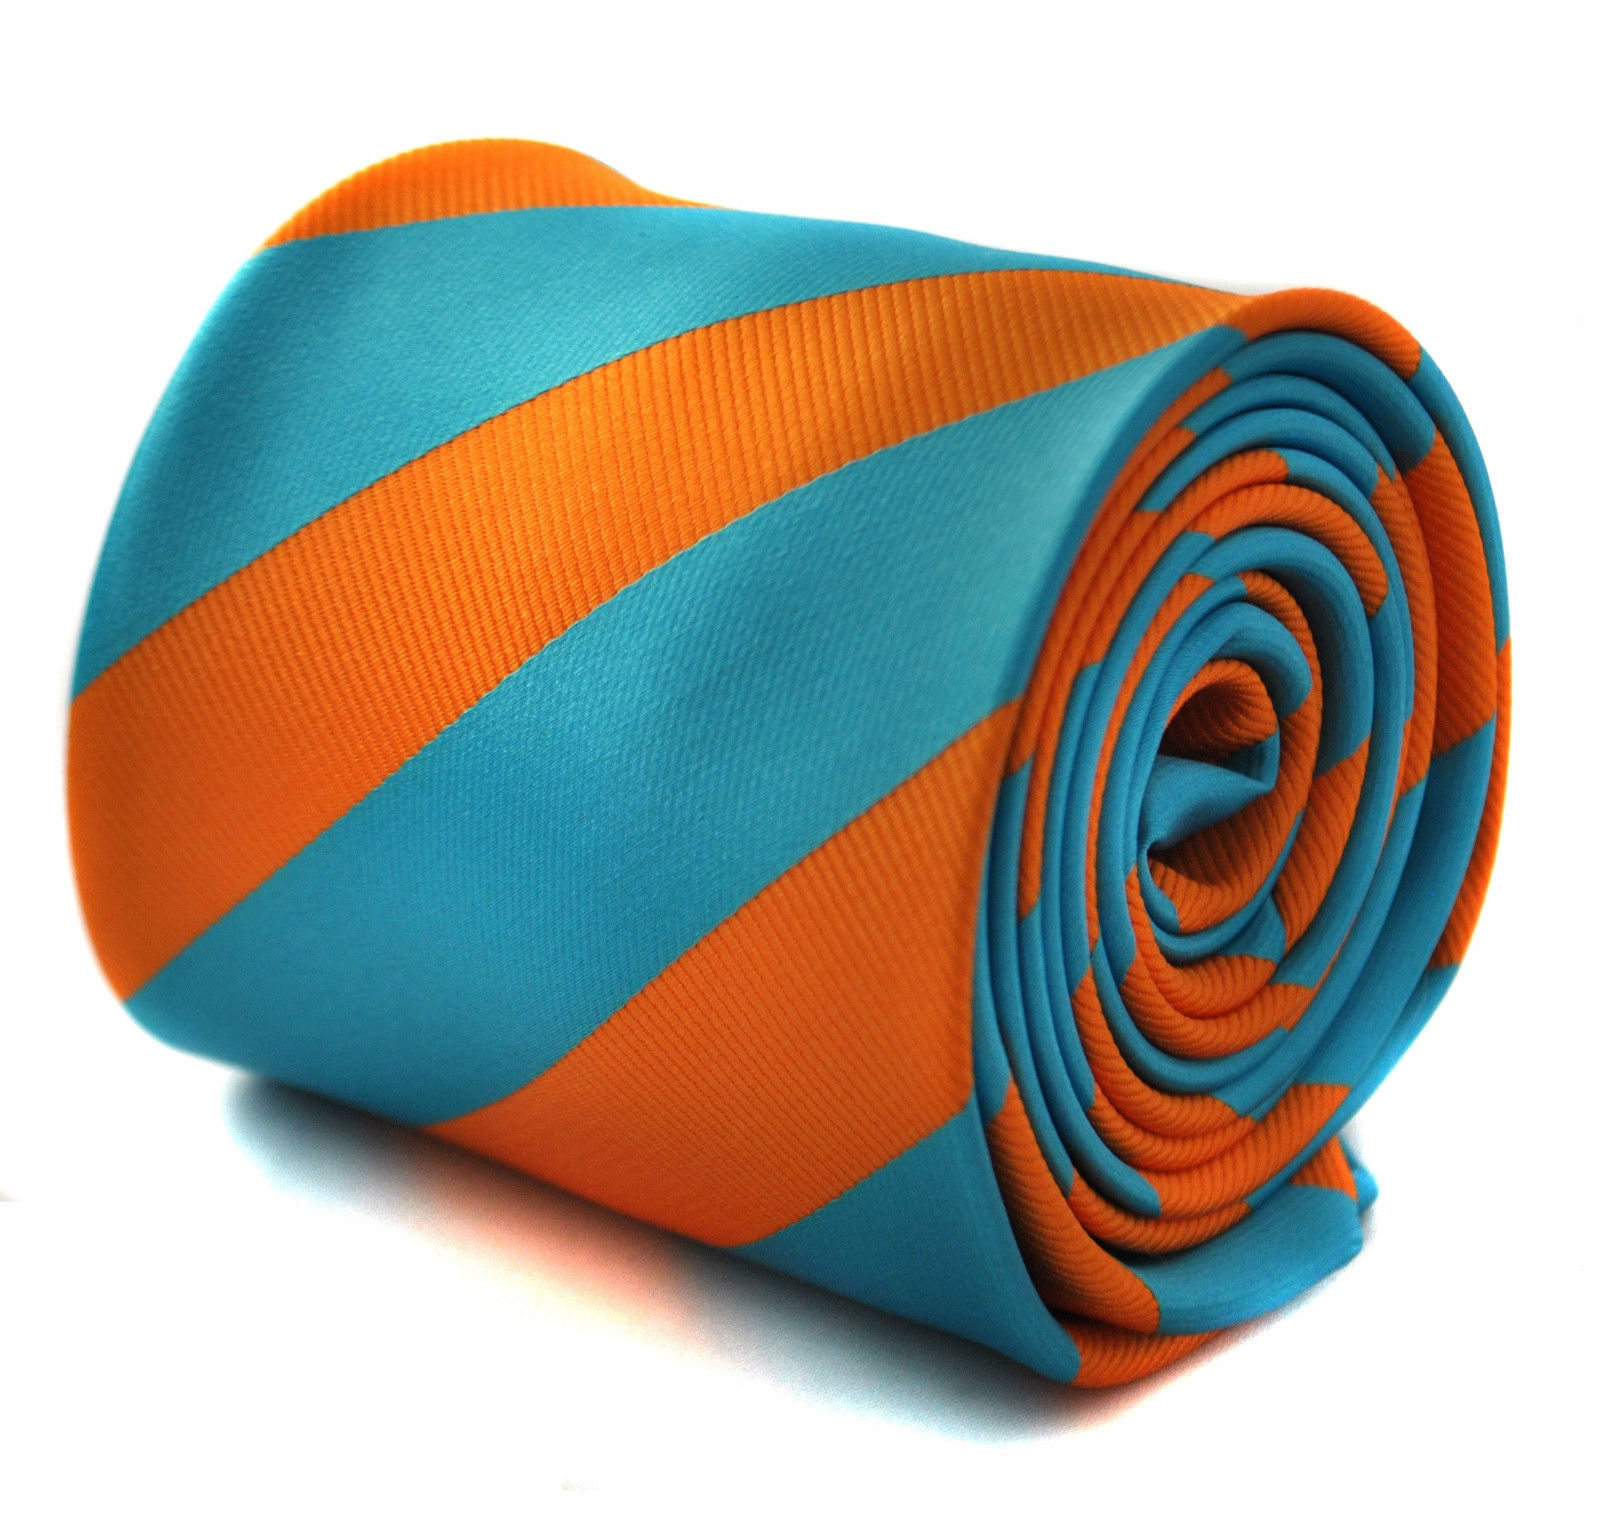 Frederick Thomas turquoise and orange barber striped tie FT1754